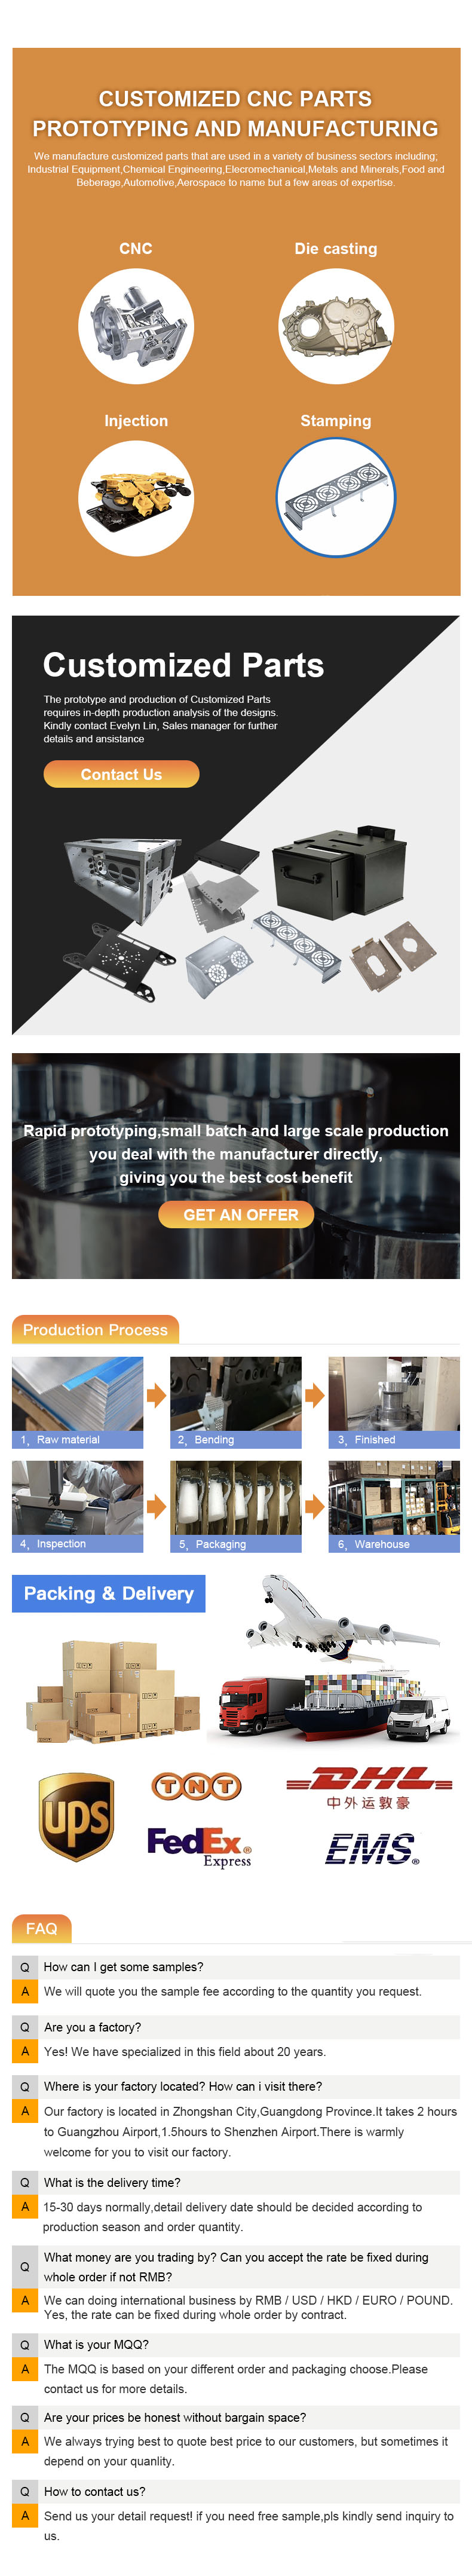 stamping metal parts,CNC MACHINING PARTS,PRECISION CNC MACHINING PARTS,CNC ALUMINUM PARTS,Machined Products,CNC Machined Products,BoYang Hardware Products